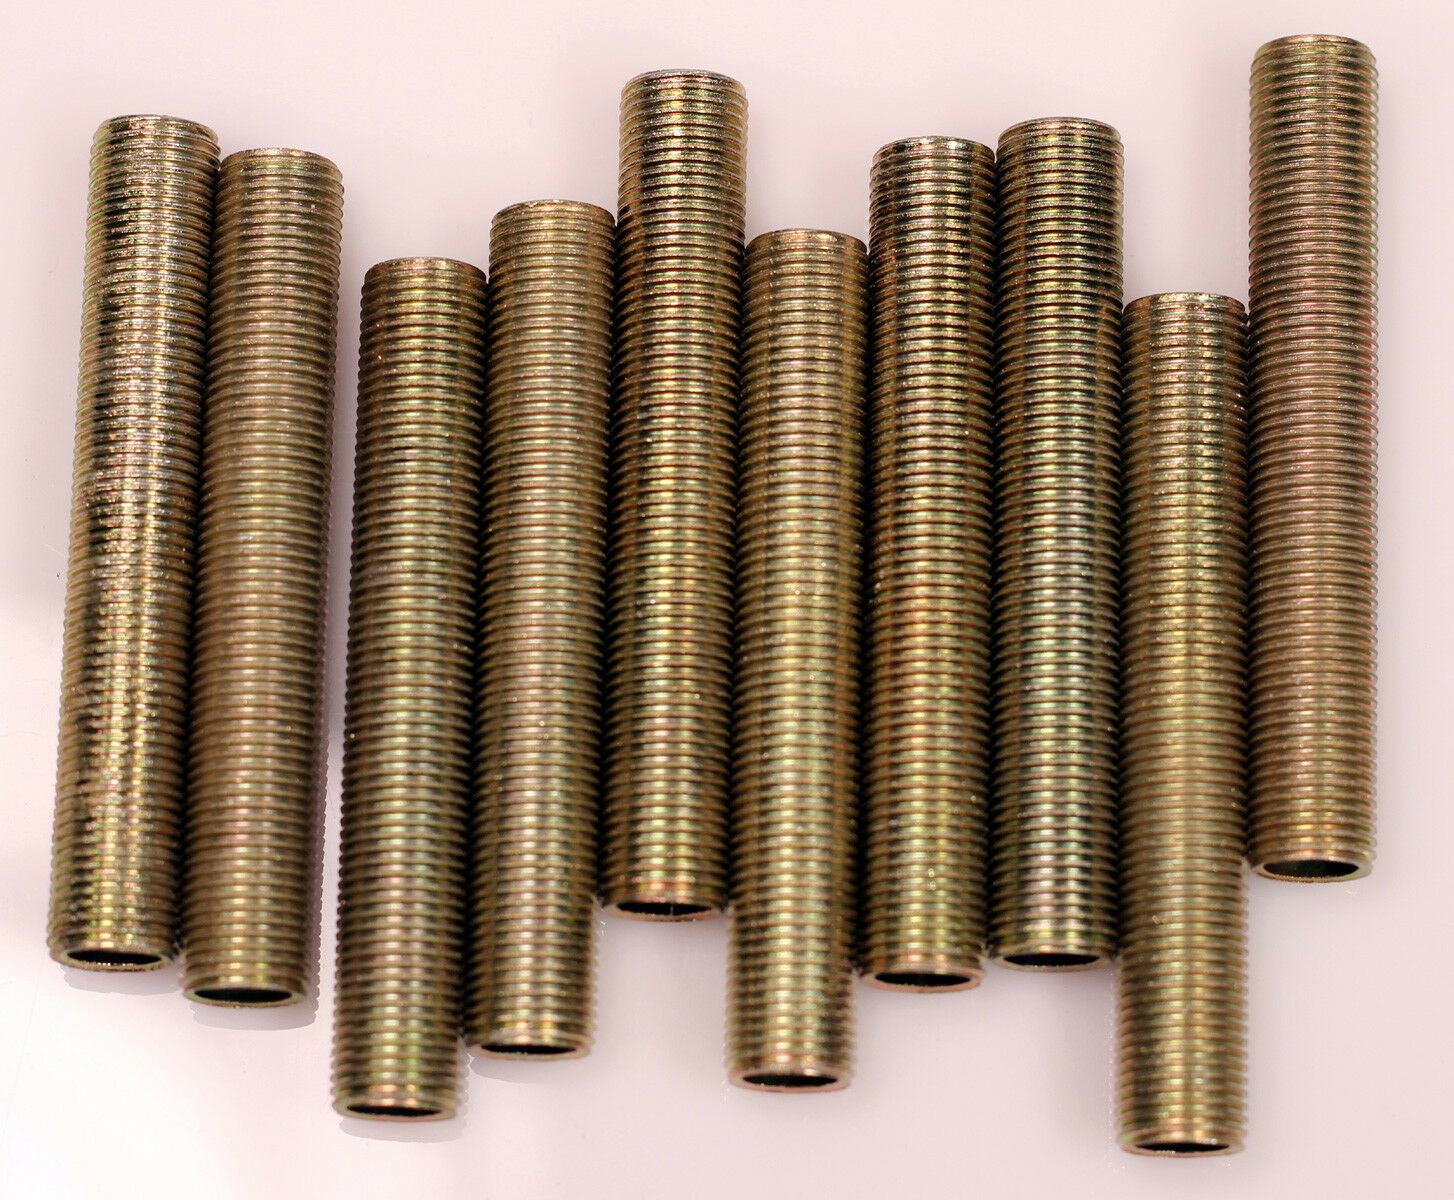 Steel All Thread Lamp Pipe Nipples, 6 Inch, 1/8IP Standard Lamp Pipe, DIY-10 Pcs Collectibles